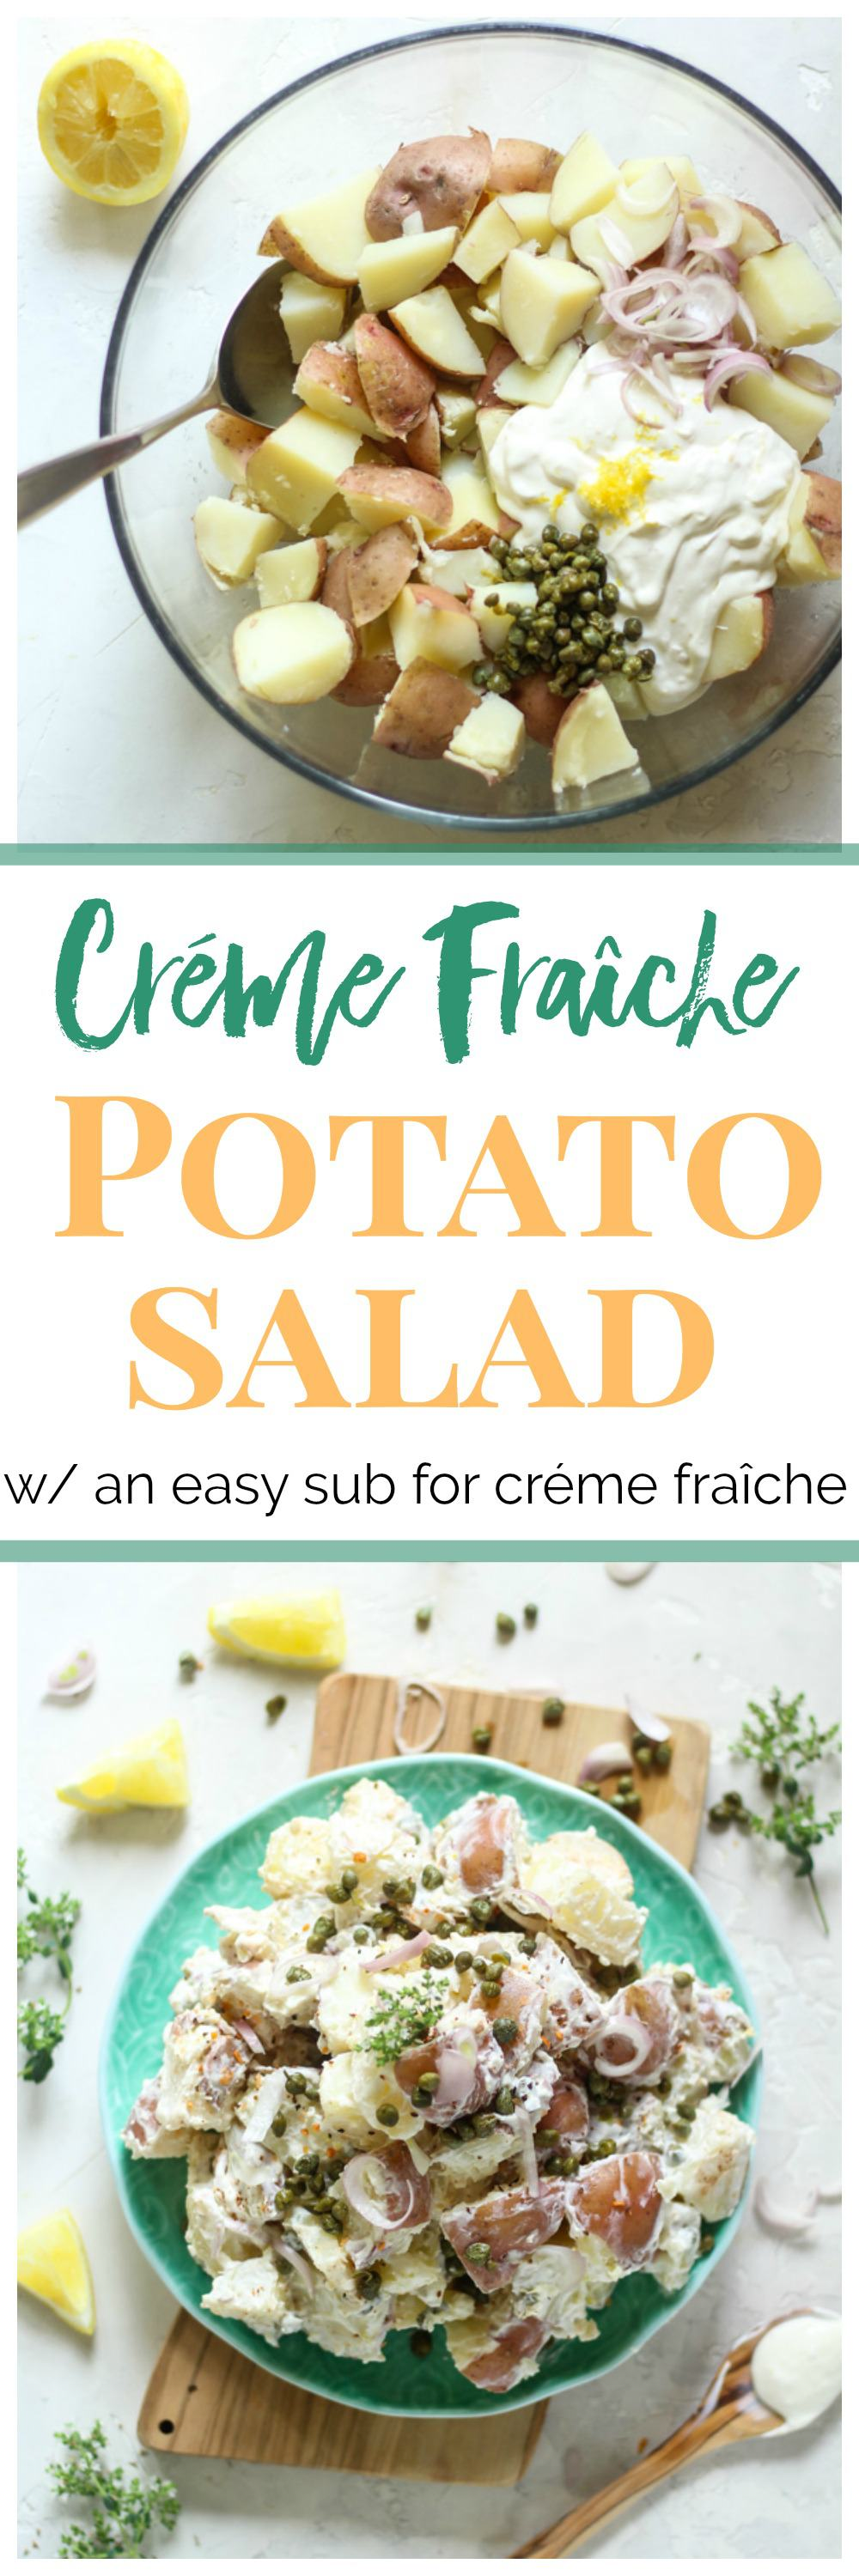 Try this easy and luscious creme fraiche potato salad recipe with lemon and capers!